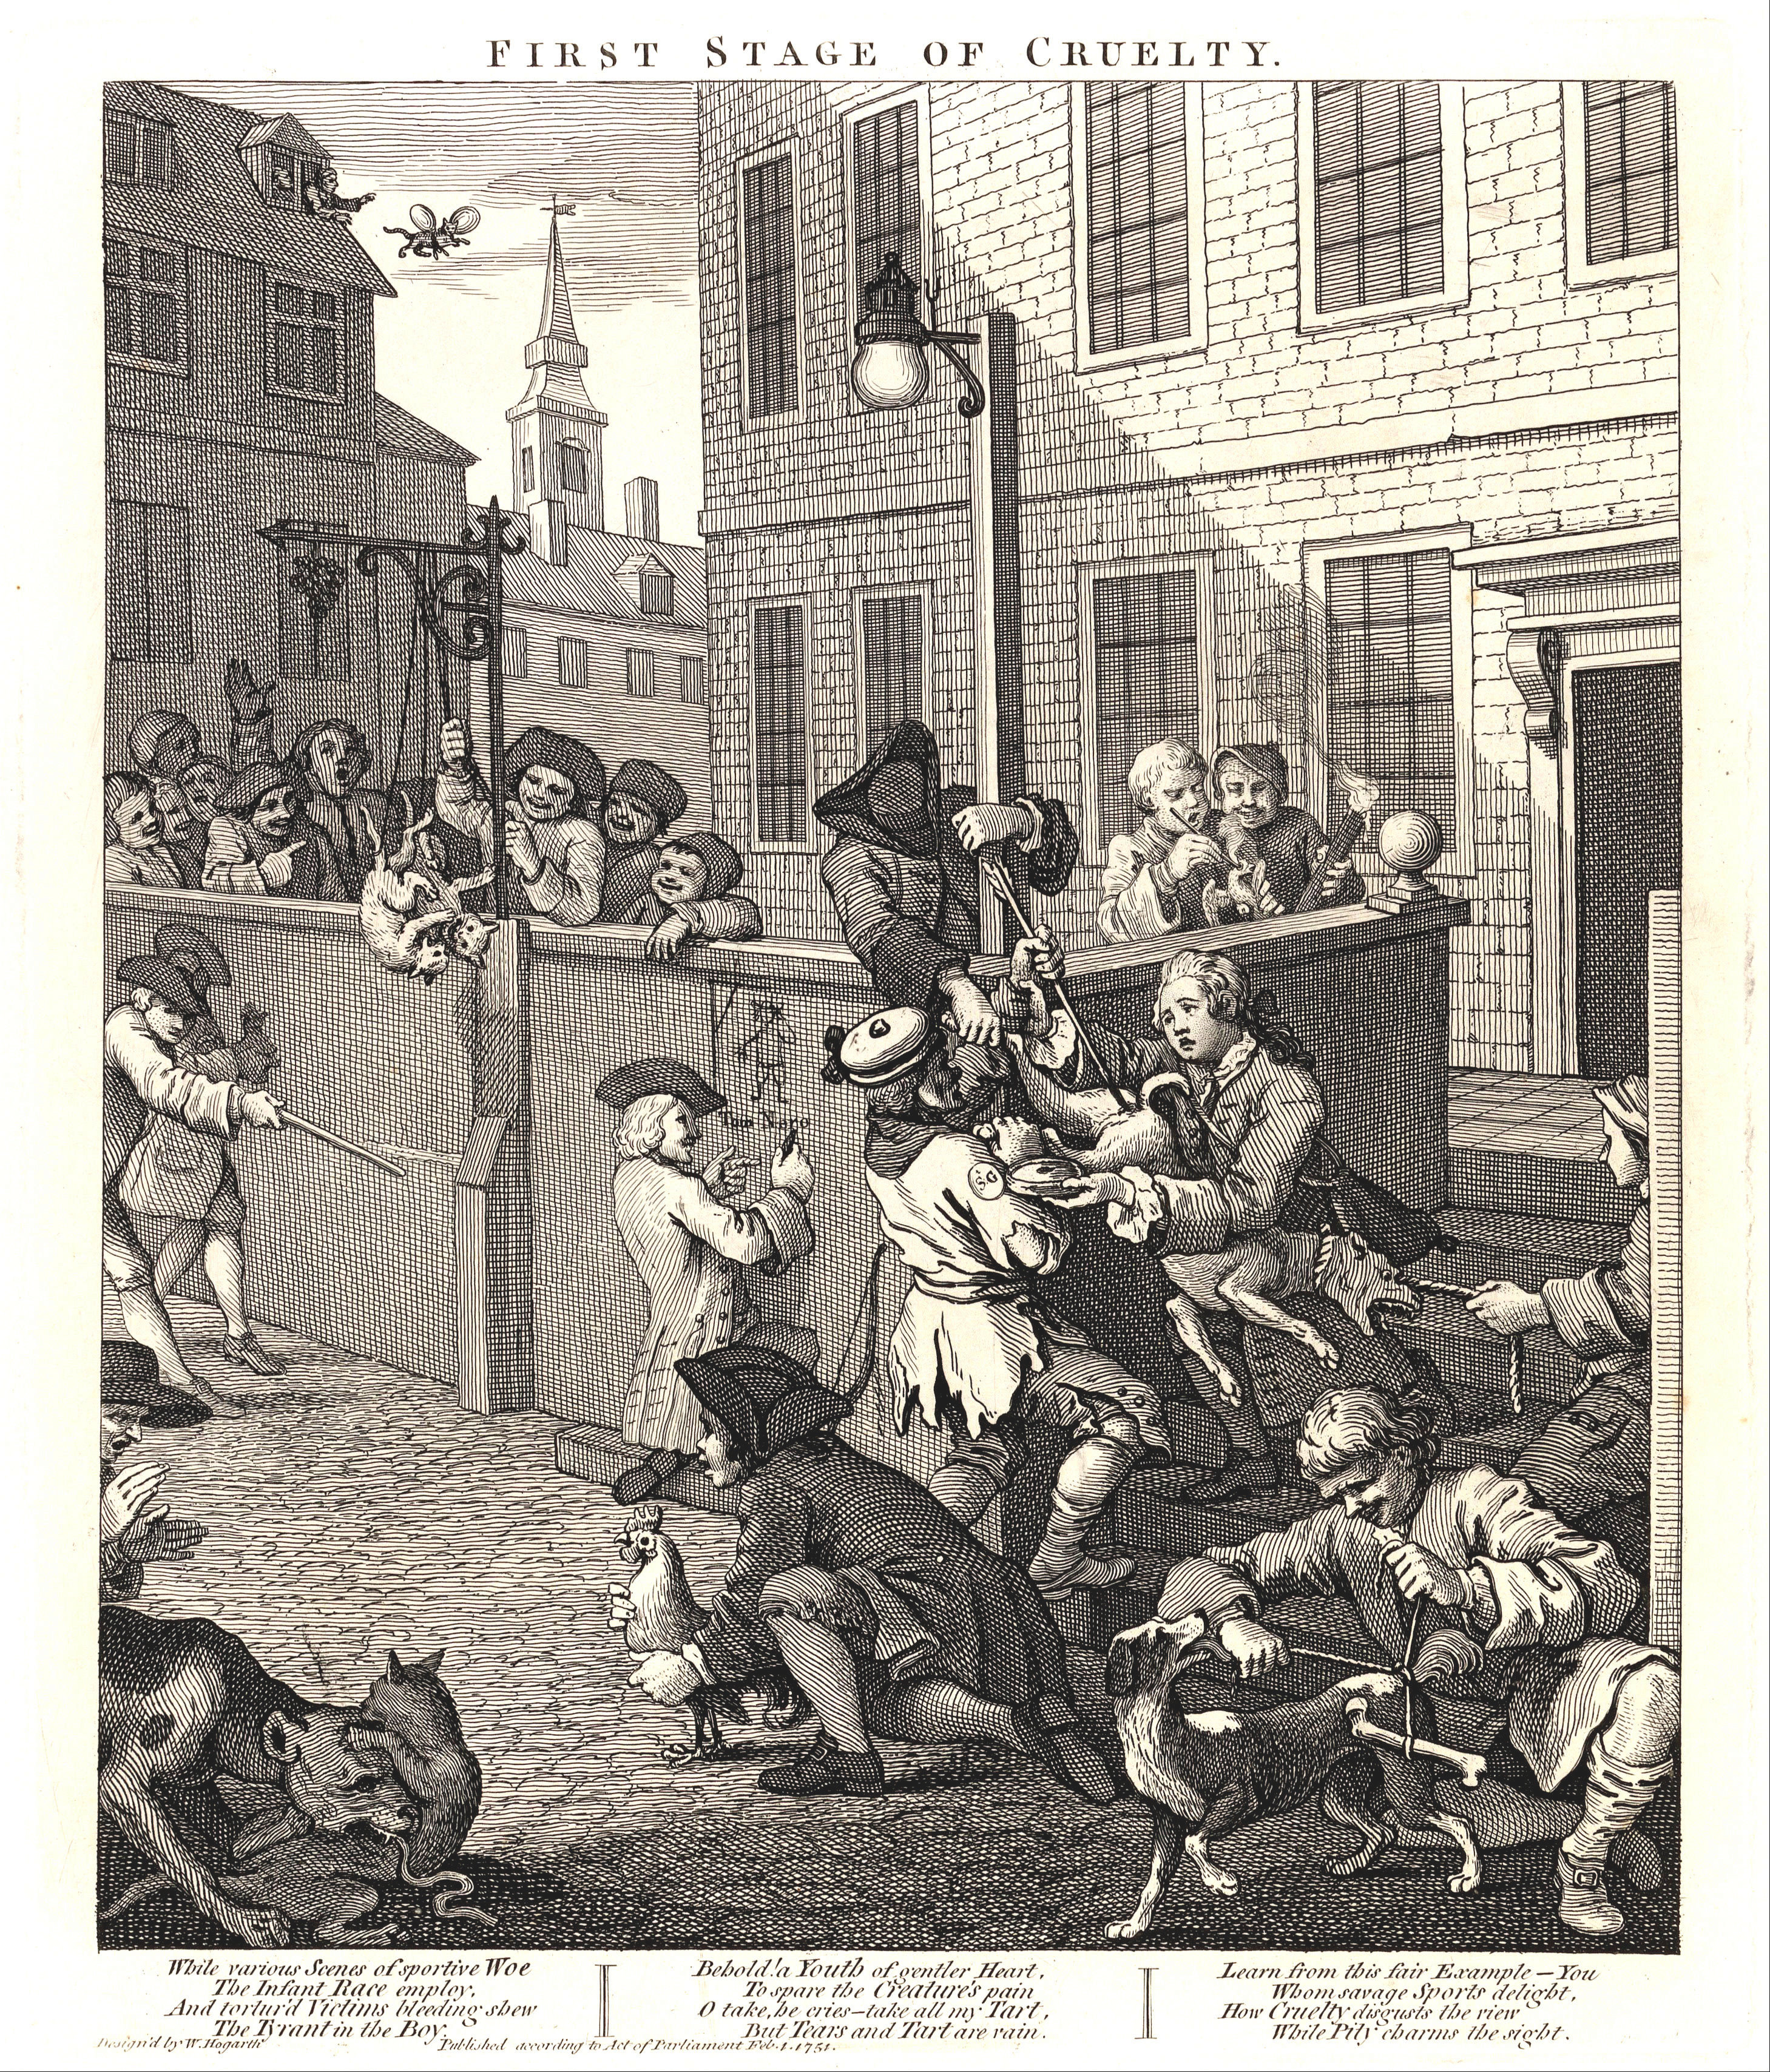 William_Hogarth_-_The_First_Stage_of_Cruelty-_Children_Torturing_Animals_-_Google_Art_Project